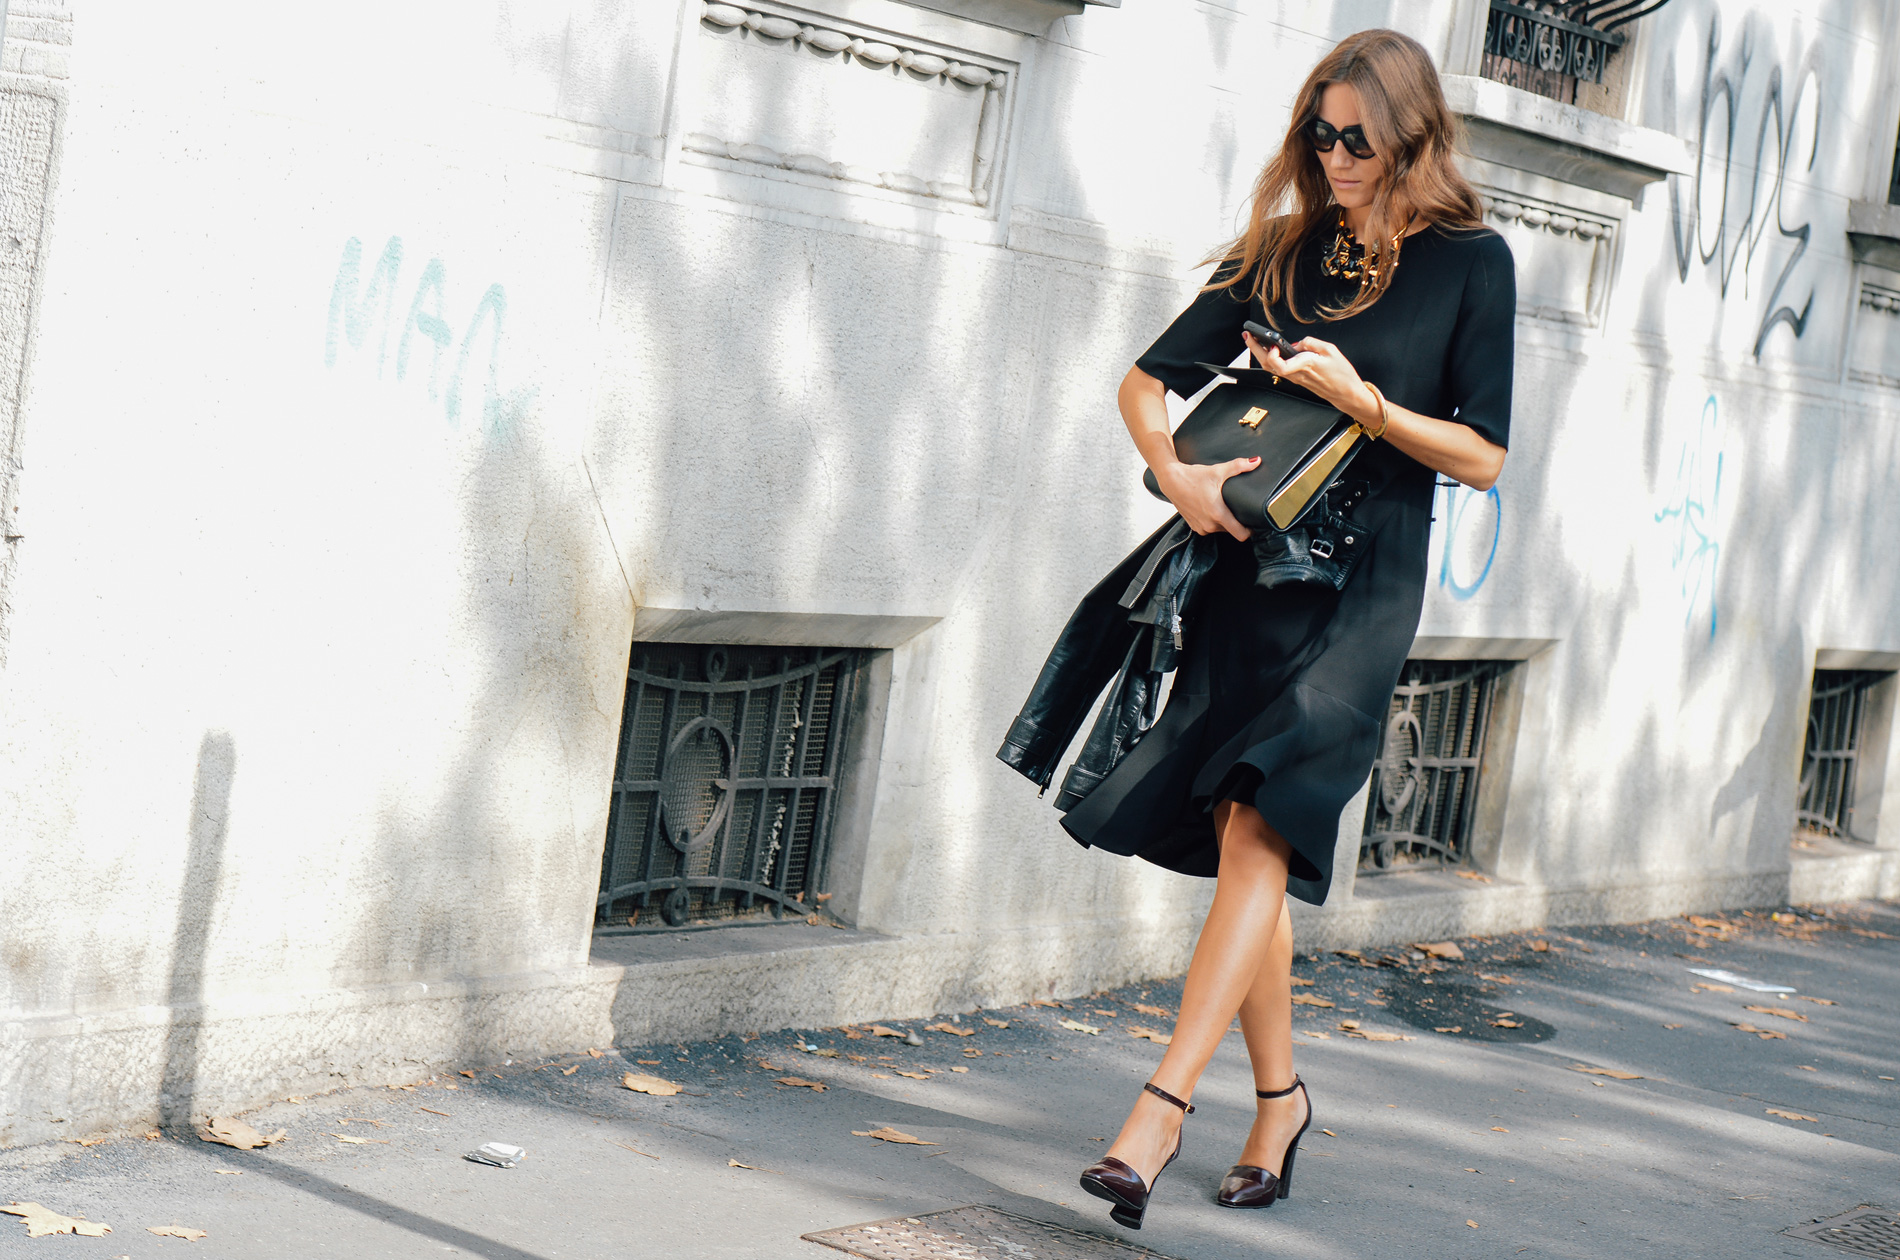 French Chic is all about decoding the Secrets of Paris Fashion, like this Parisian woman who's teamed a well-cut skirt and top with a sleek square handbag and gold statement necklace.